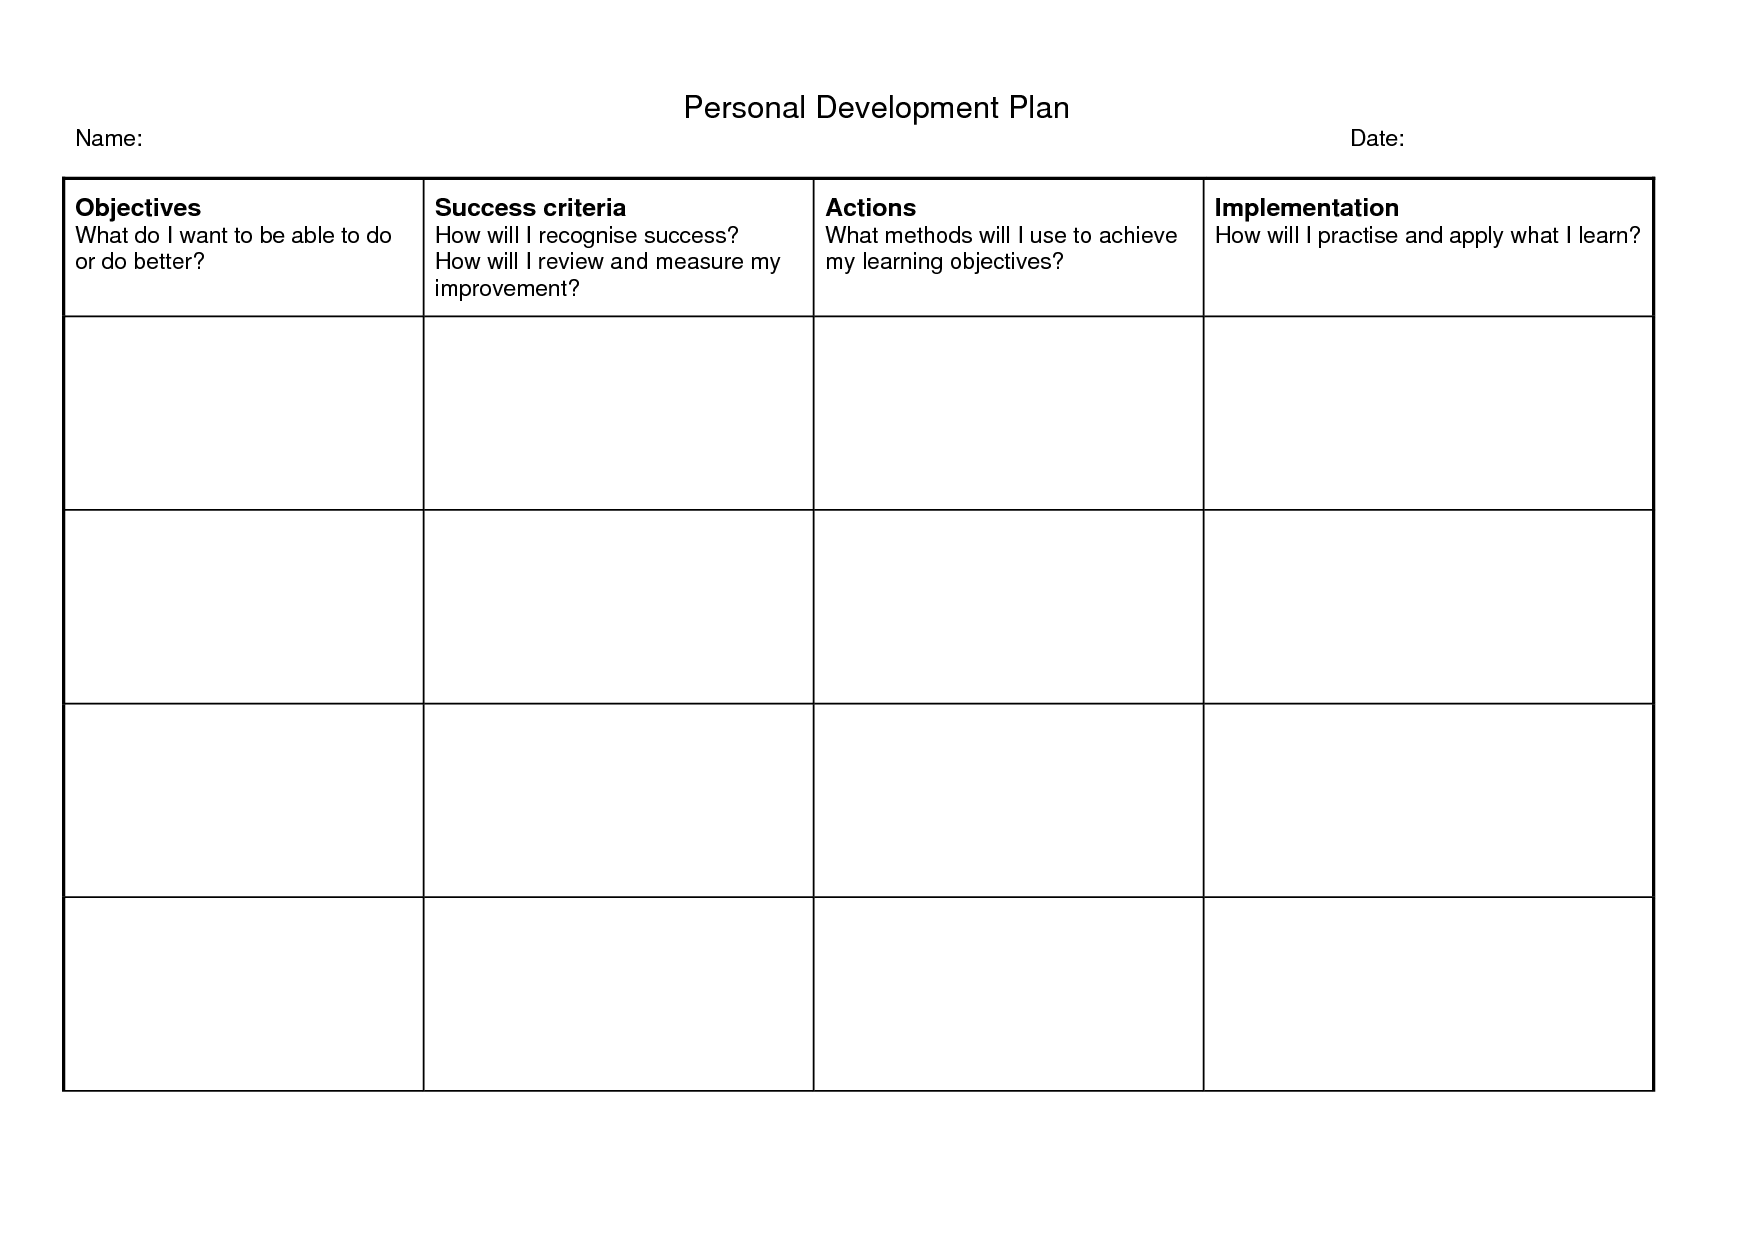 Personal Development Plan Templates  Google Search  Development